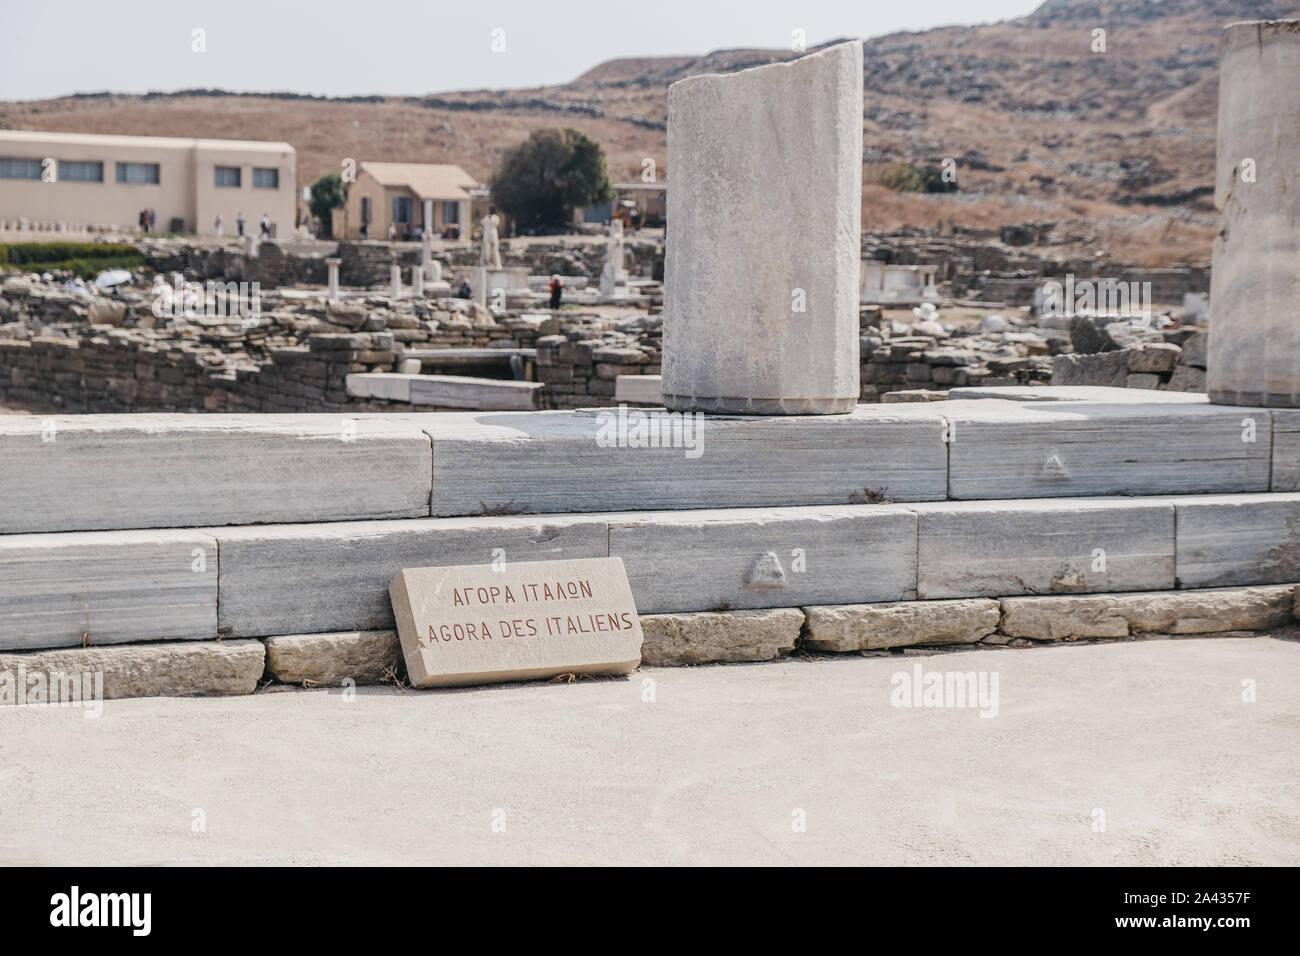 """Sign on the Agora des Italiens (""""Agora of the Italians"""") on the Greek island of Delos, archaeological site near Mykonos in the Aegean Sea Cyclades arc Stock Photo"""